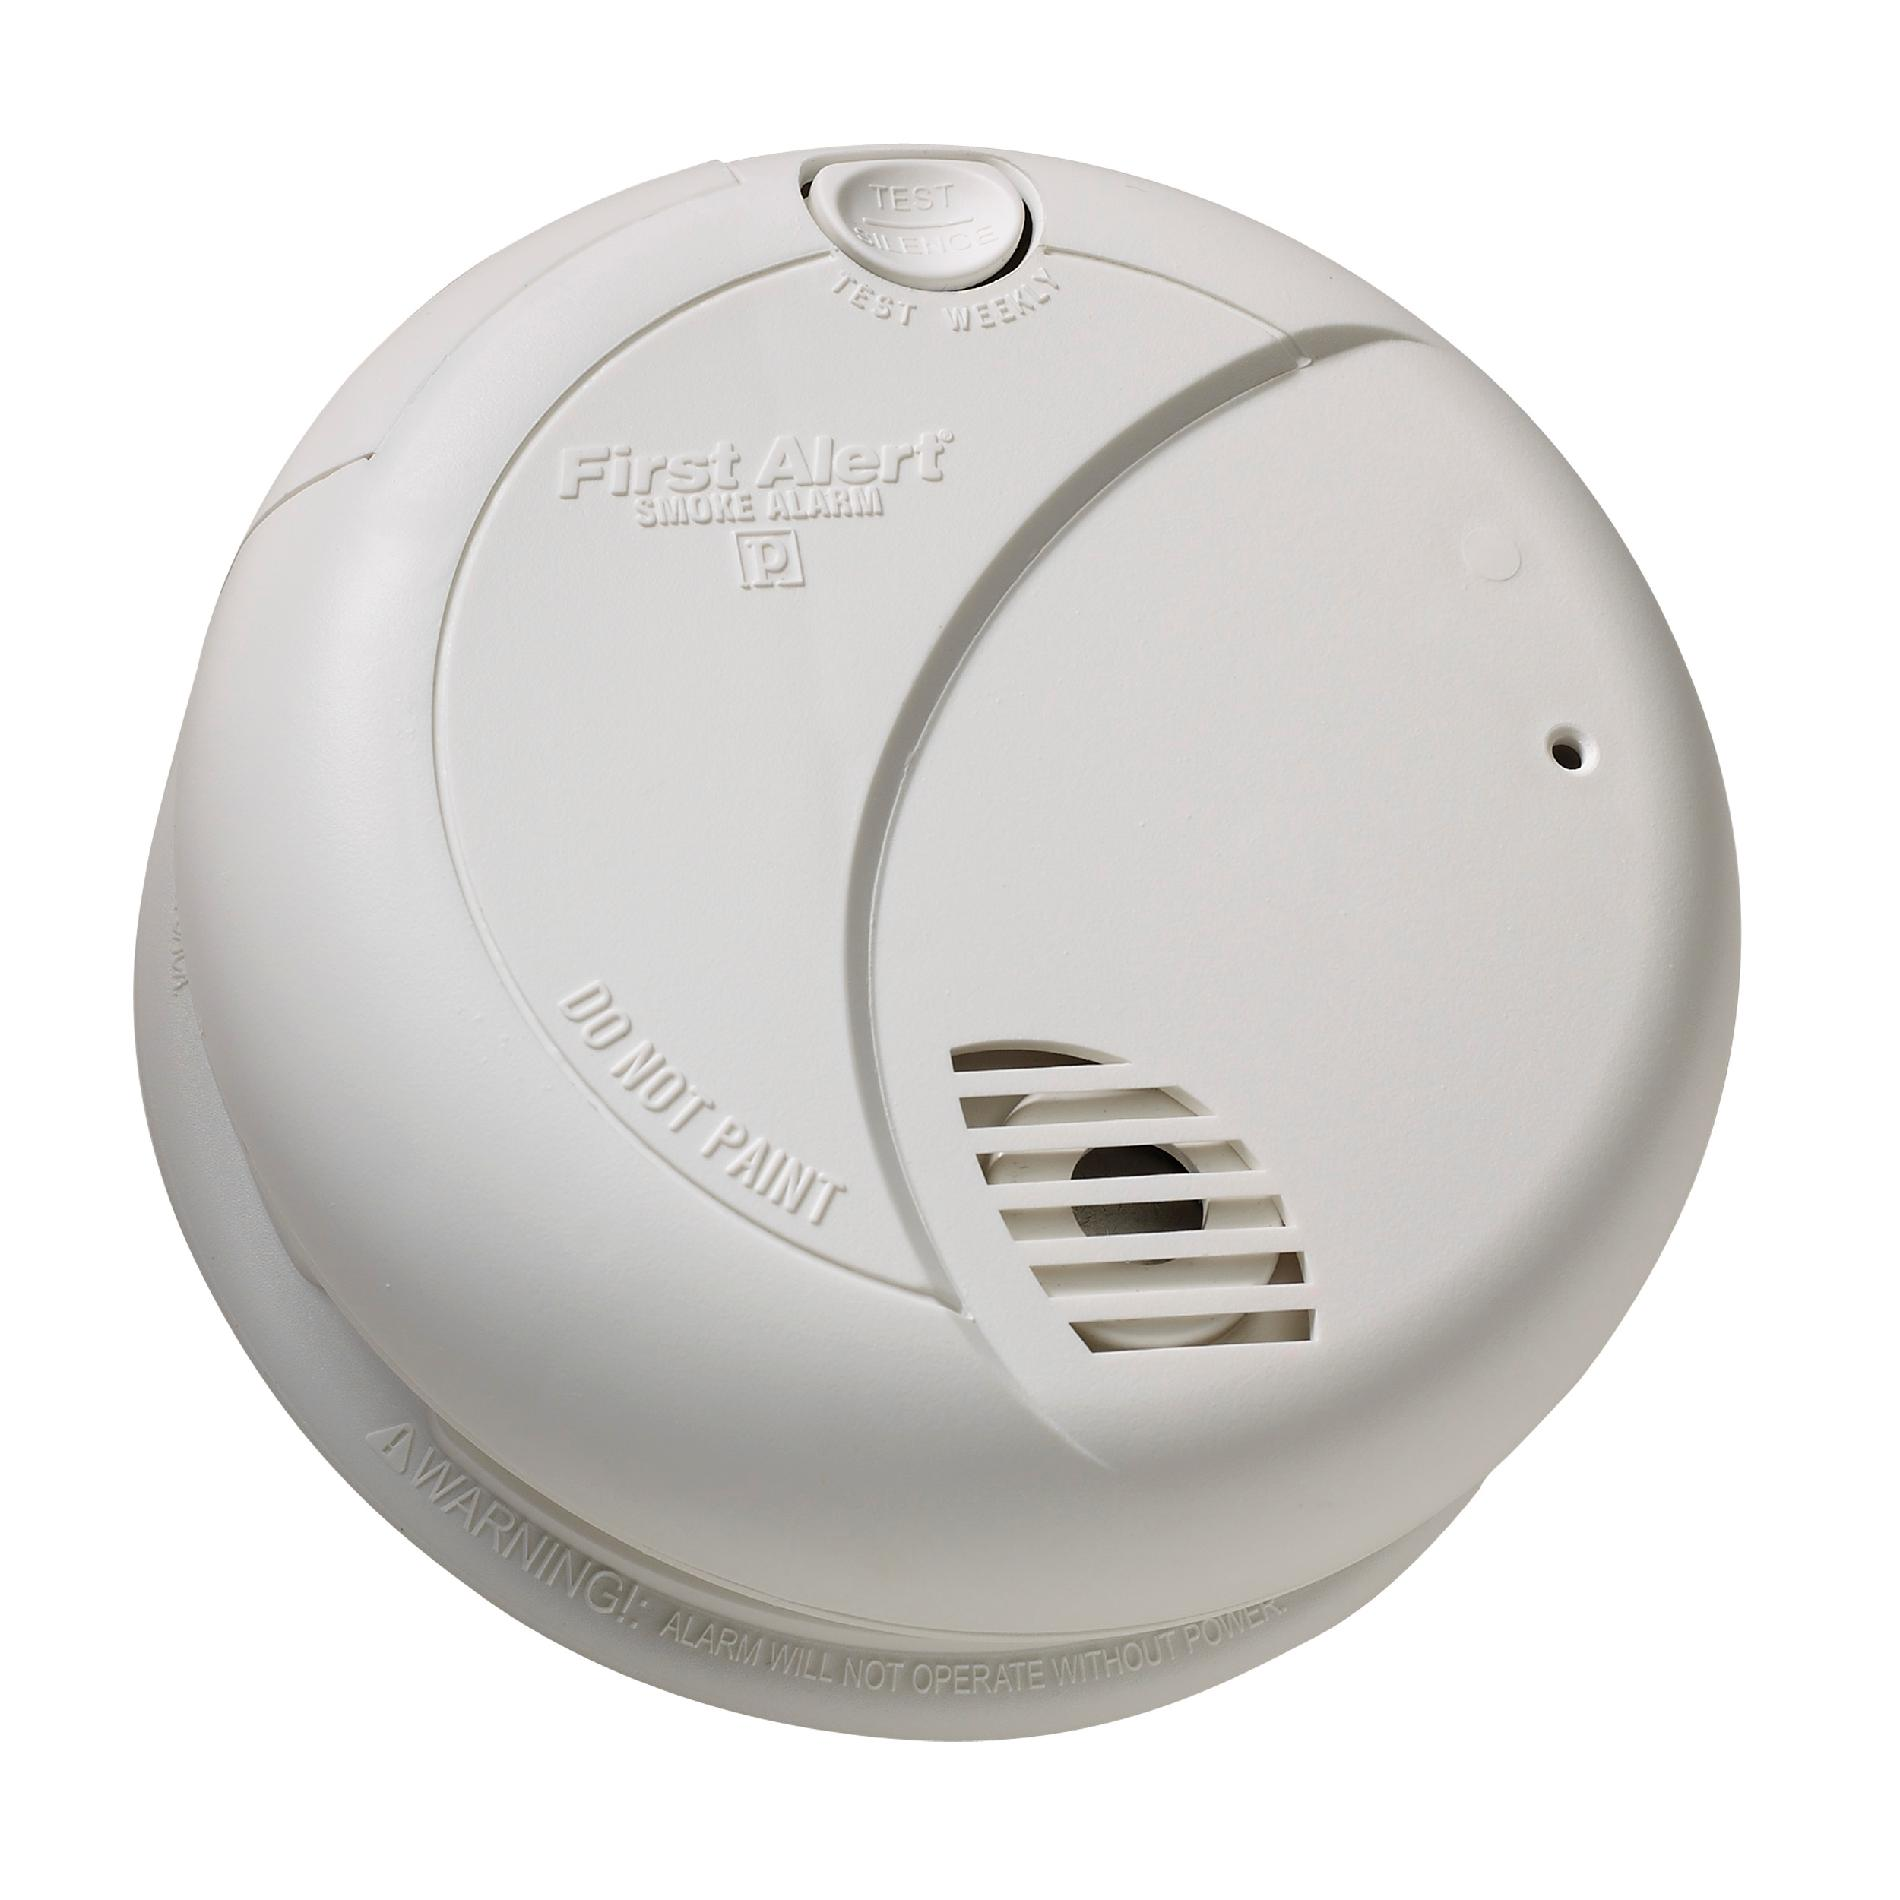 First Alert Smoke Alarm with Photoelectric Smoke Sensing Technology